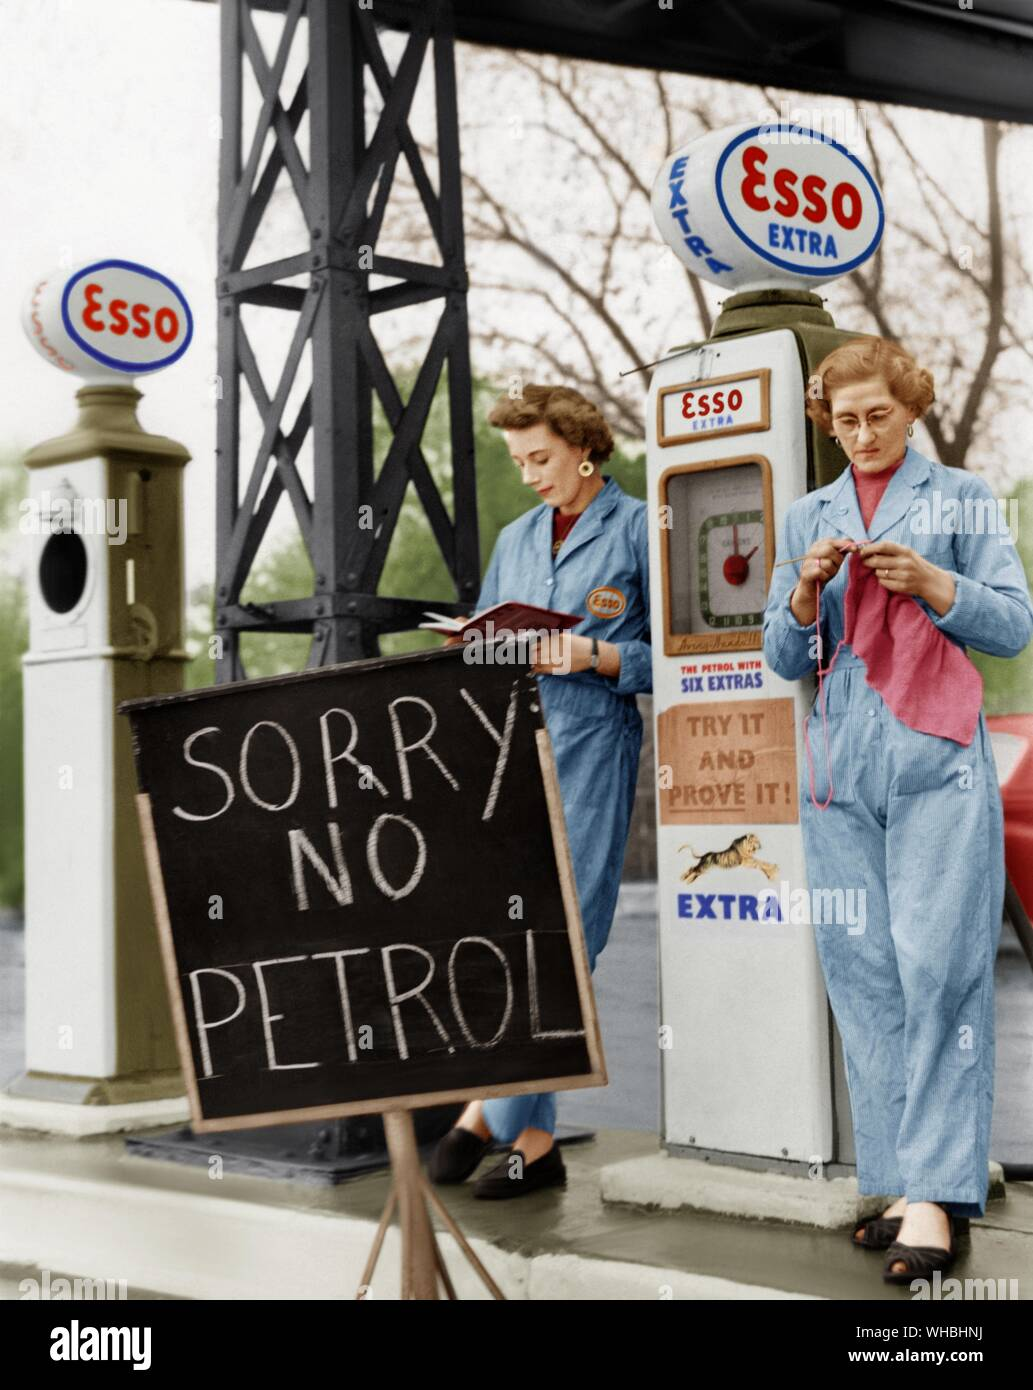 The unofficial strike of petrol tanker men is now seriously affecting London garages, many of which are today displaying Sold Out notices. At one Hendon garage, the girl assistants having no petrol to sell were whiling away their time on various activities such as reading and knitting.. . Picture shows Pauline Piercy and Rene Thursfield with a Sorry No Petrol notice in front of them. Stock Photo